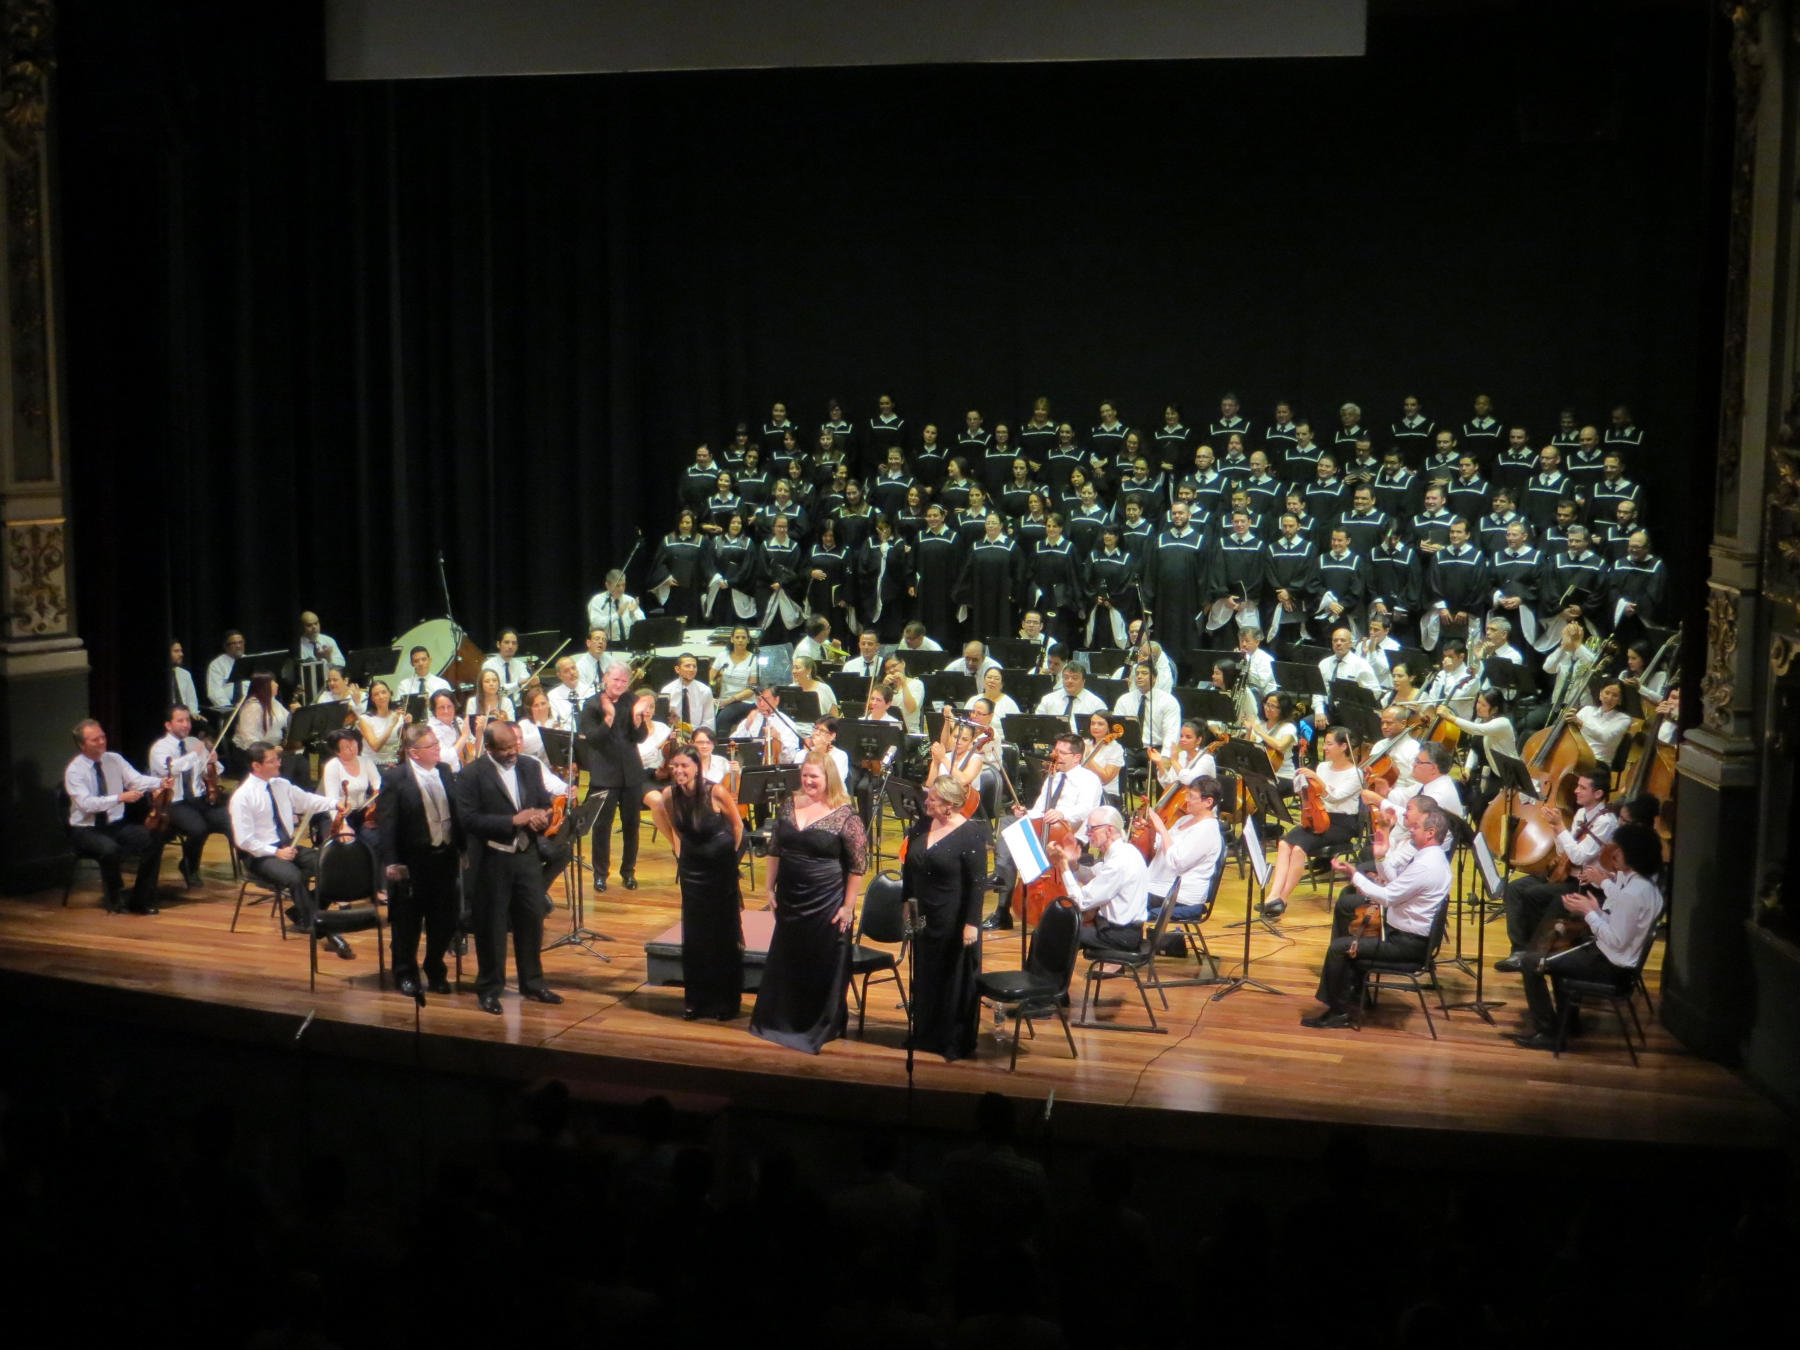 Costa Rica's National Symphony Orchestra, along with a chorus and soloists, bask in the applause after a fabulous performance of Beethoven's 9th Symphony.